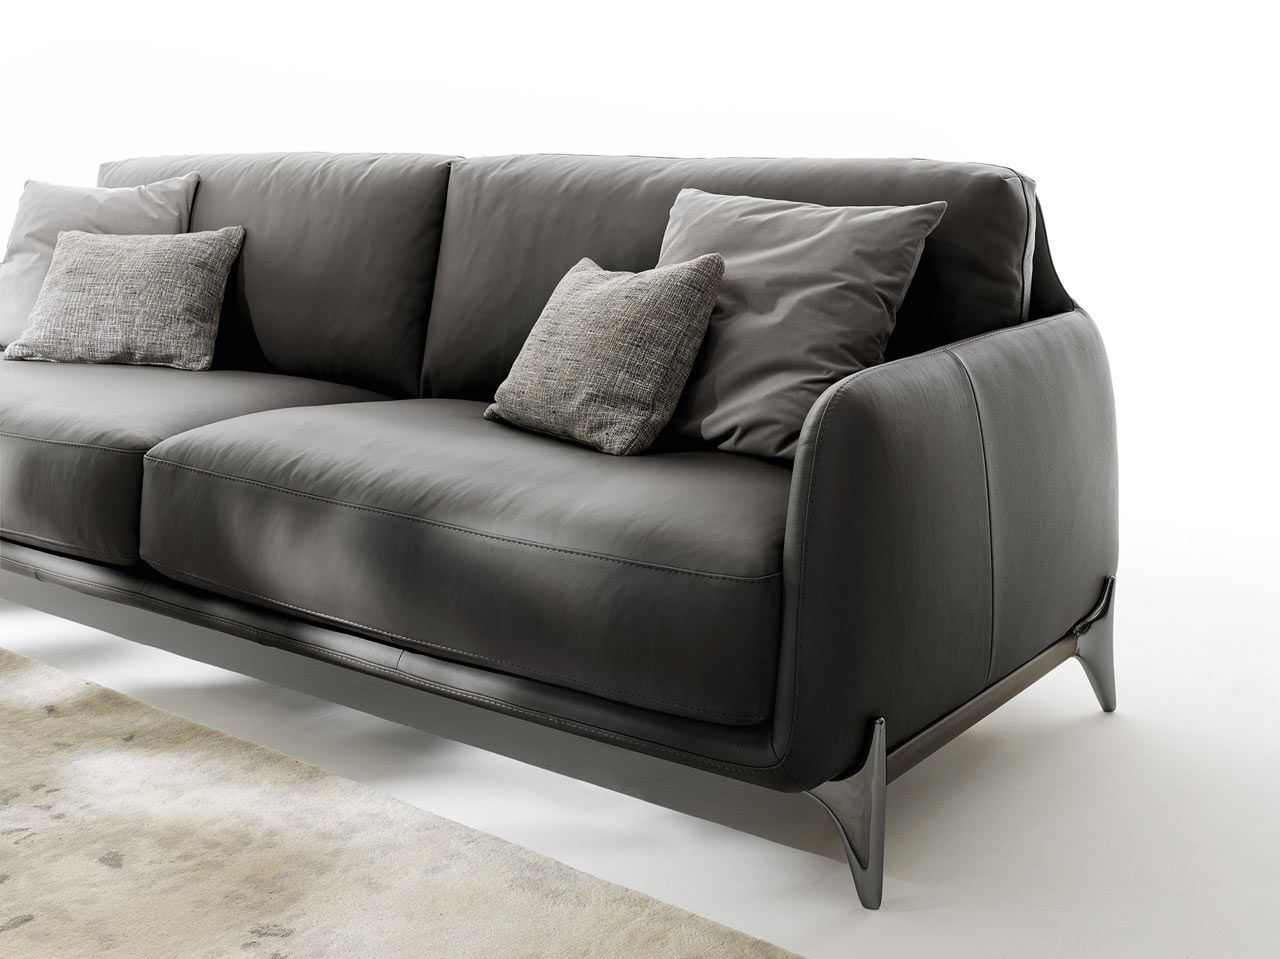 Elliot A Cozy Gentlemen S Sofa With A Retro Detail Italia  # Muebles Tutto Pelle Guadalajara